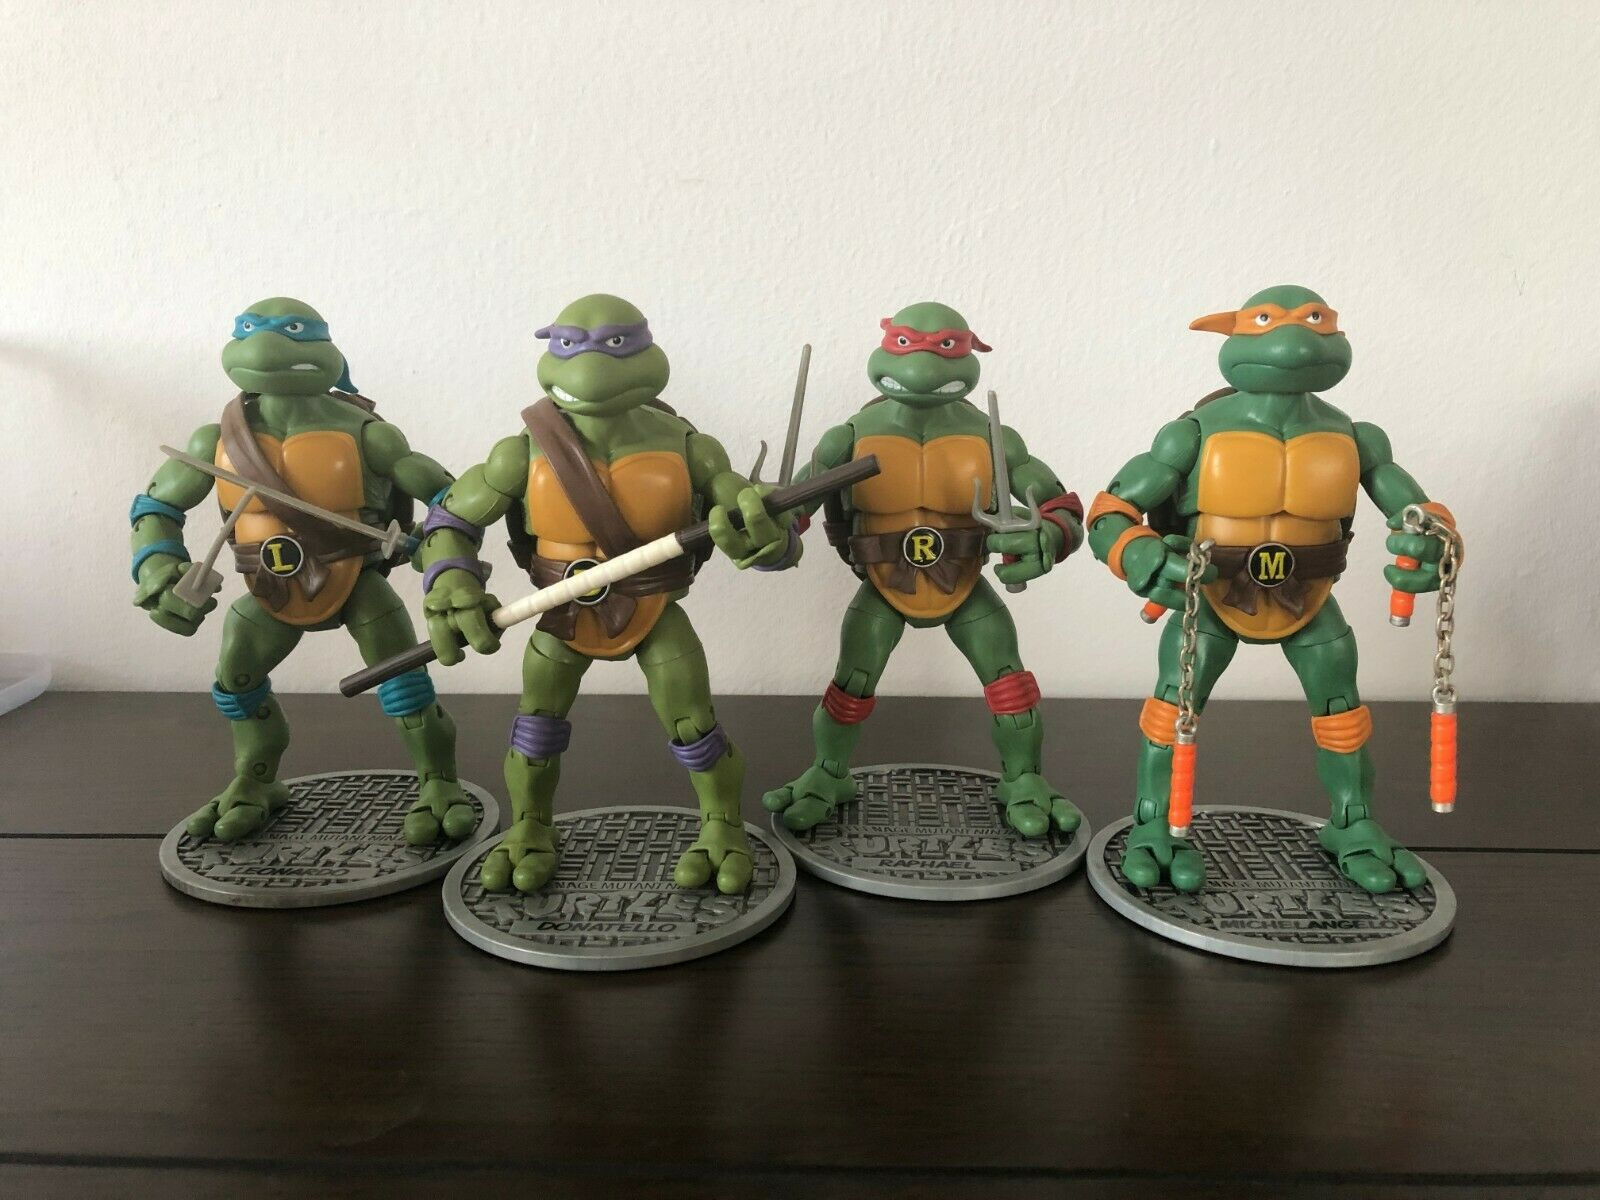 FREE POST Complete set of 4 Teenage Mutant Ninja Turtles Classic Collection TMNT